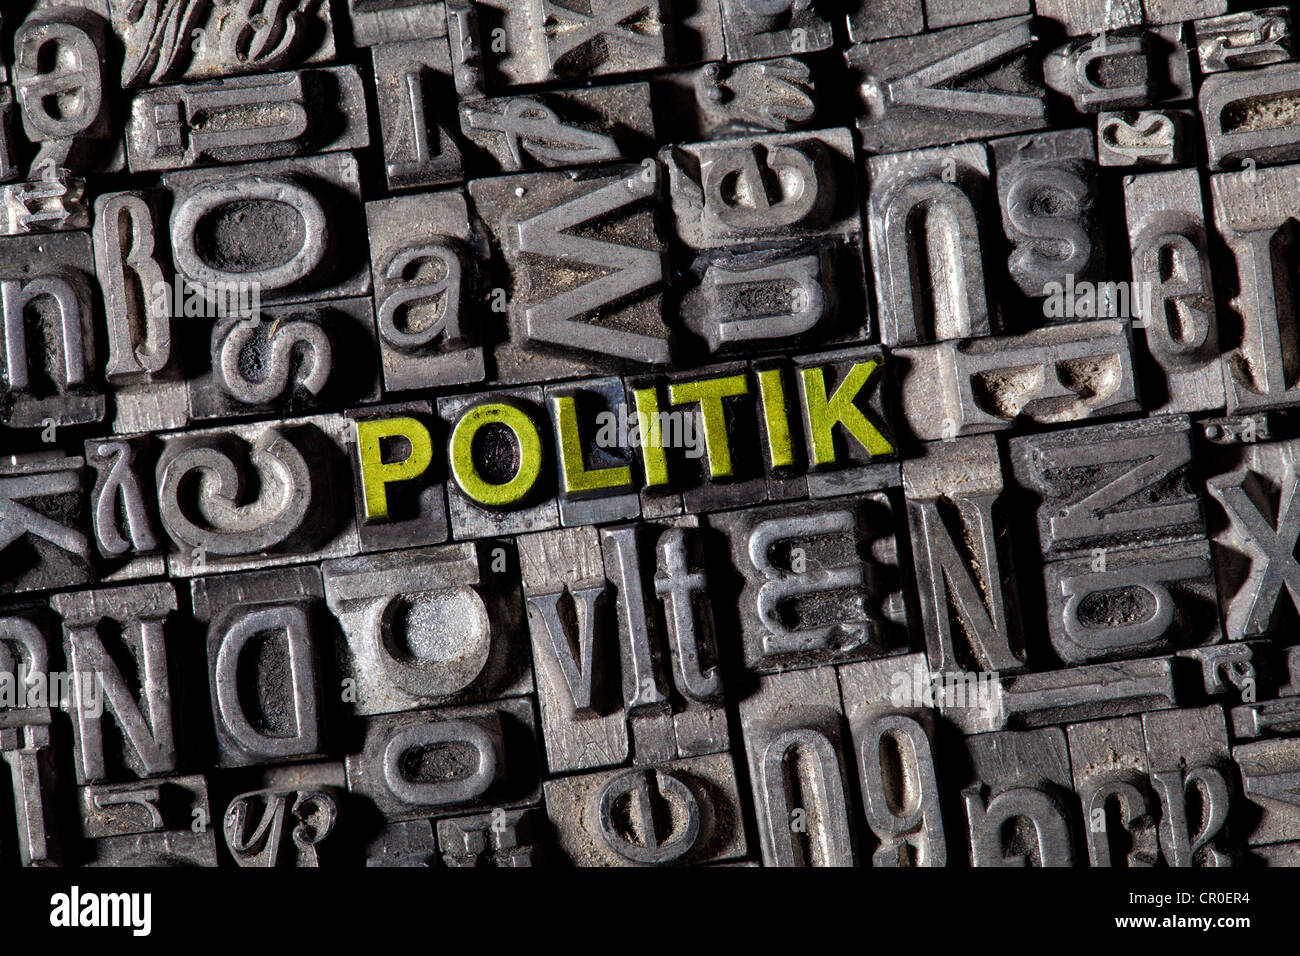 Old lead letters forming the word Politik, German for politics - Stock Image